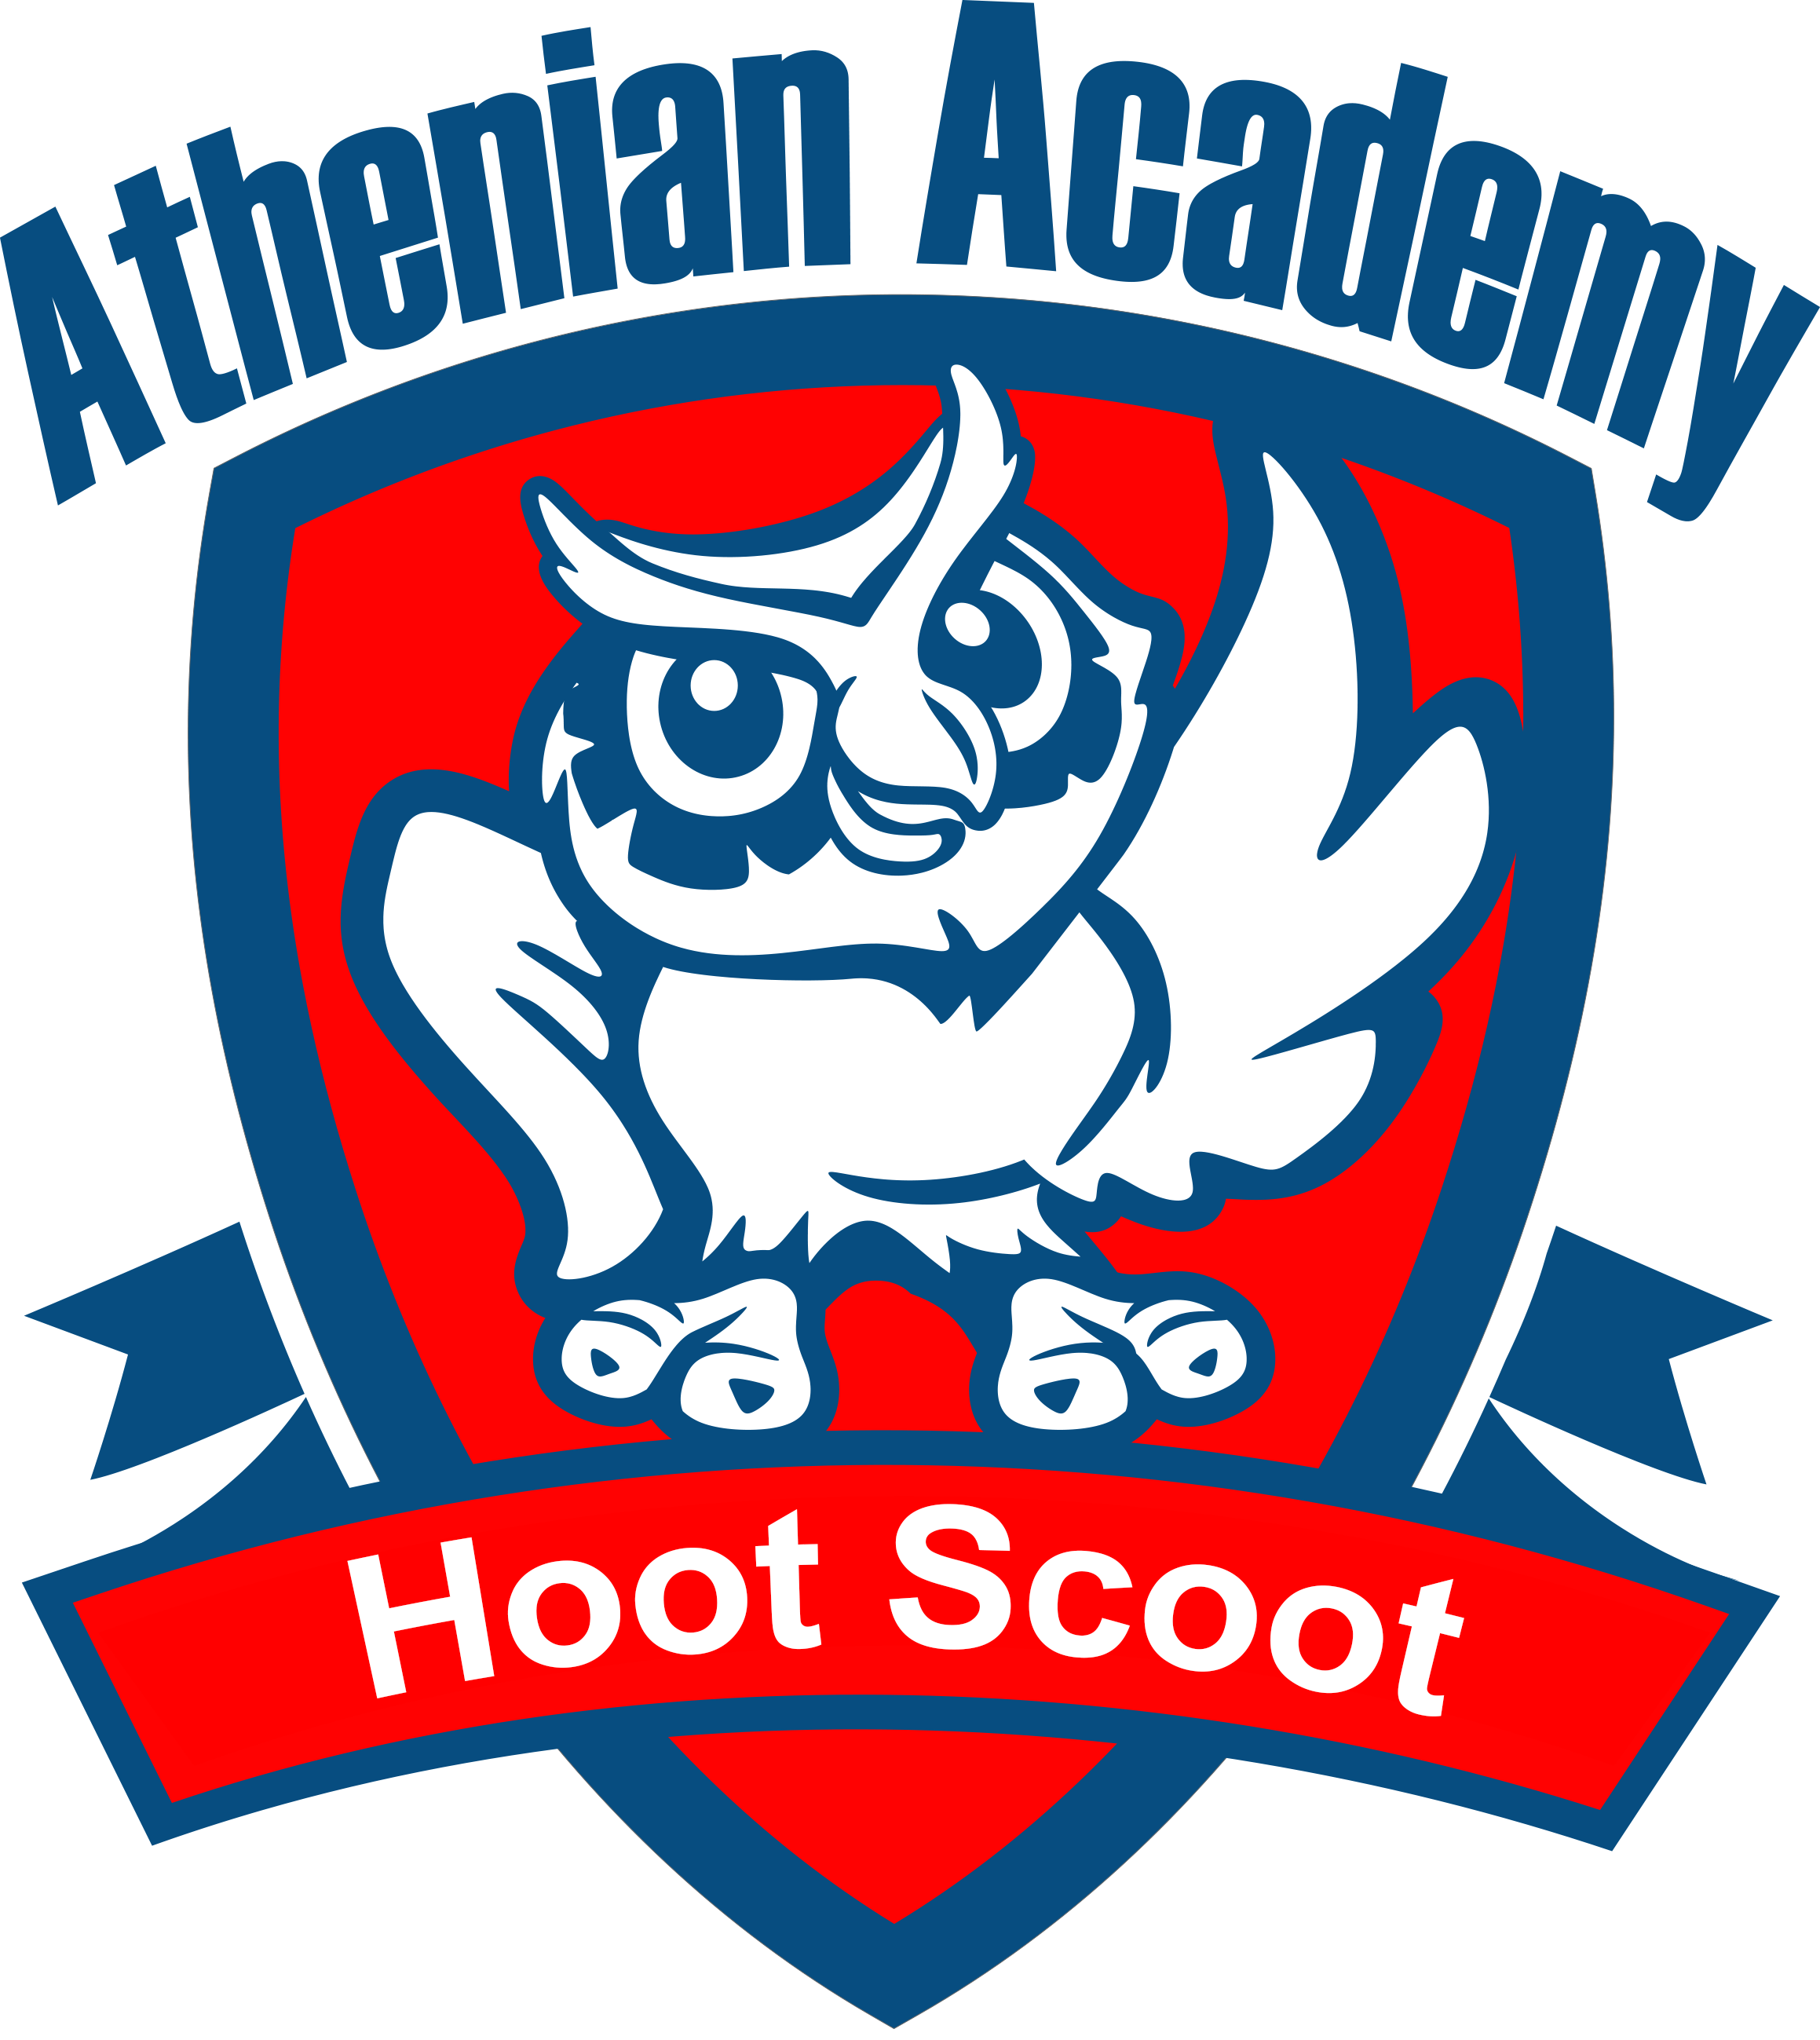 hoot-scoot